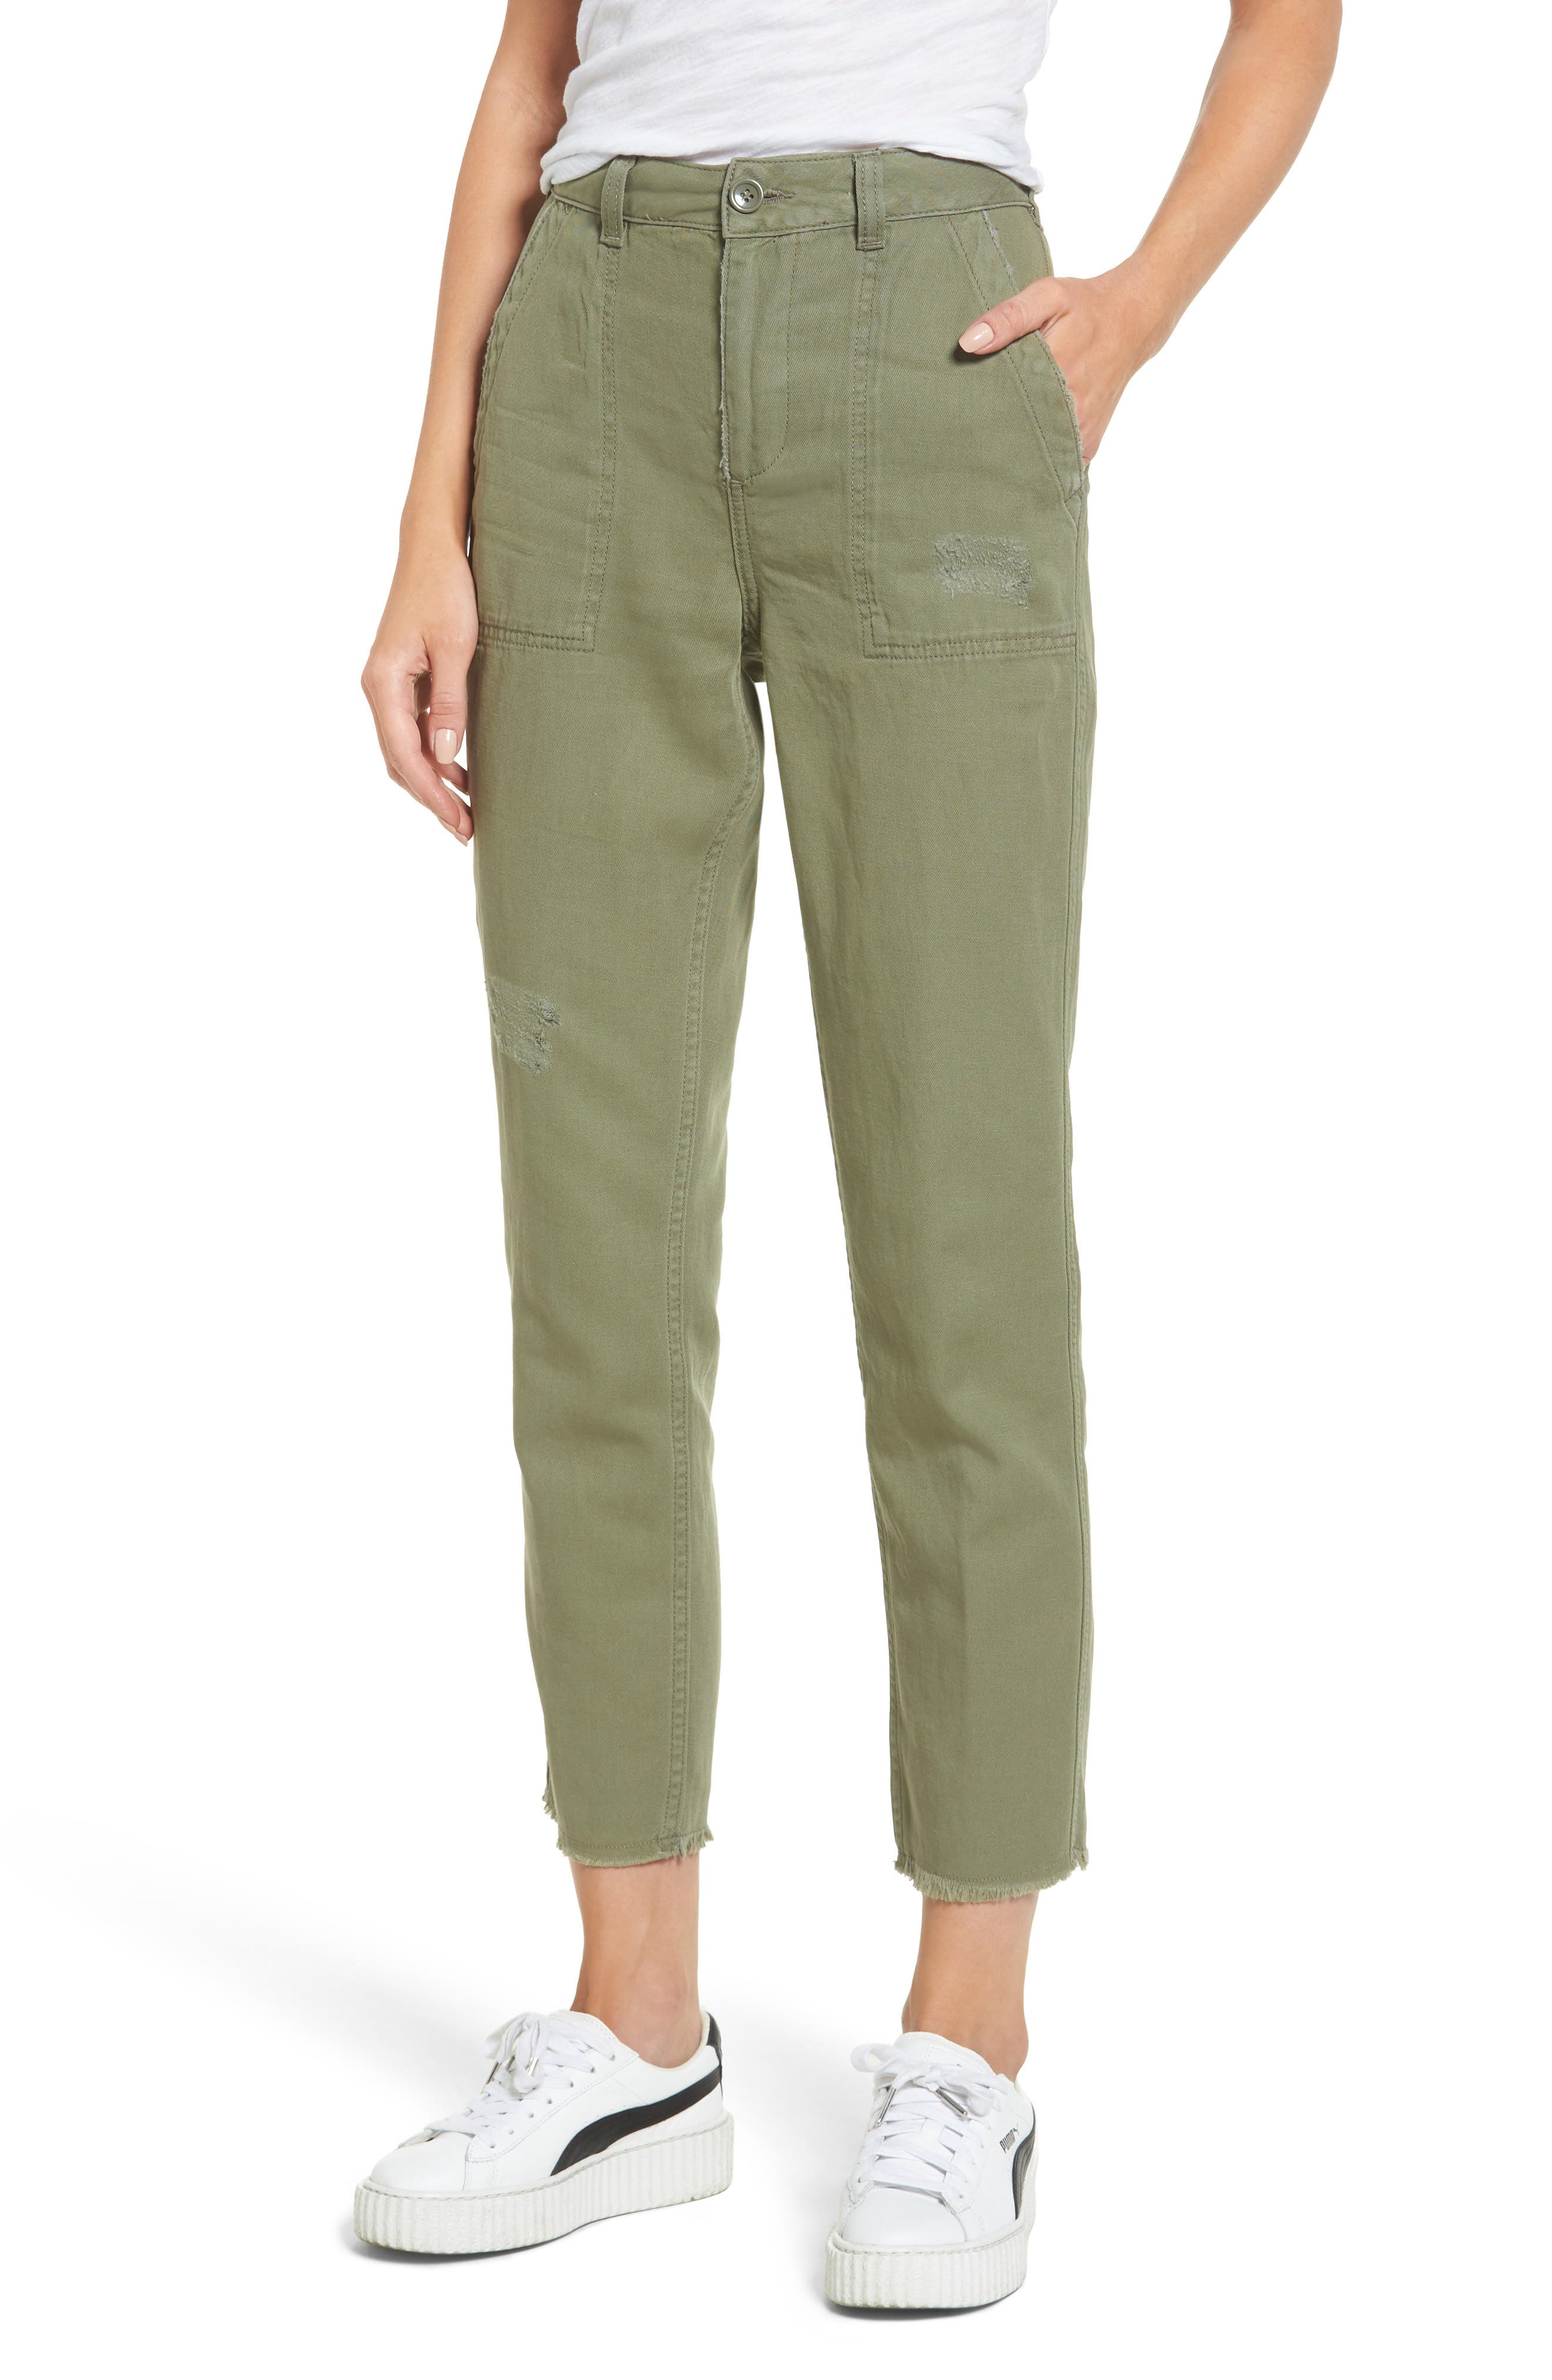 Luca Ulility Trousers,                         Main,                         color, Olive